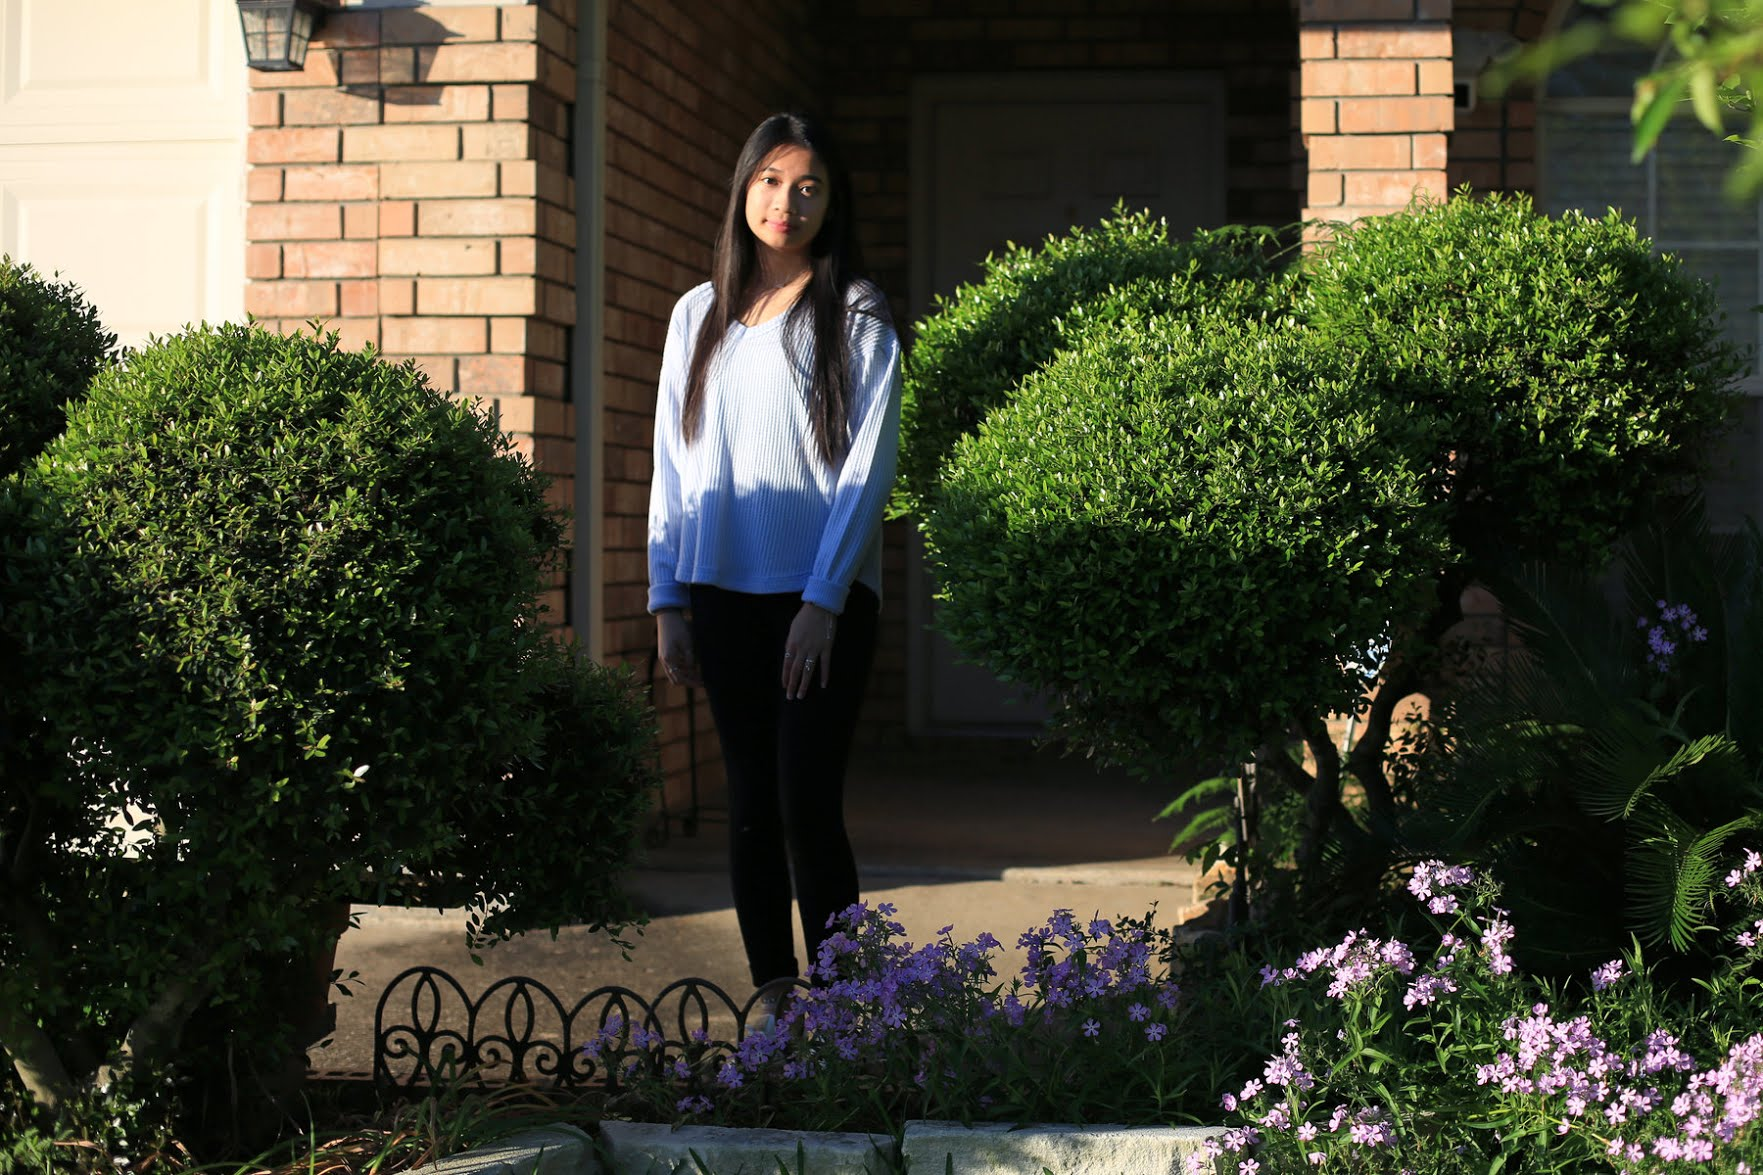 Mary Nguyen of Arlington, Texas, is one of many high school seniors who changed their college plans to stay closer to home.